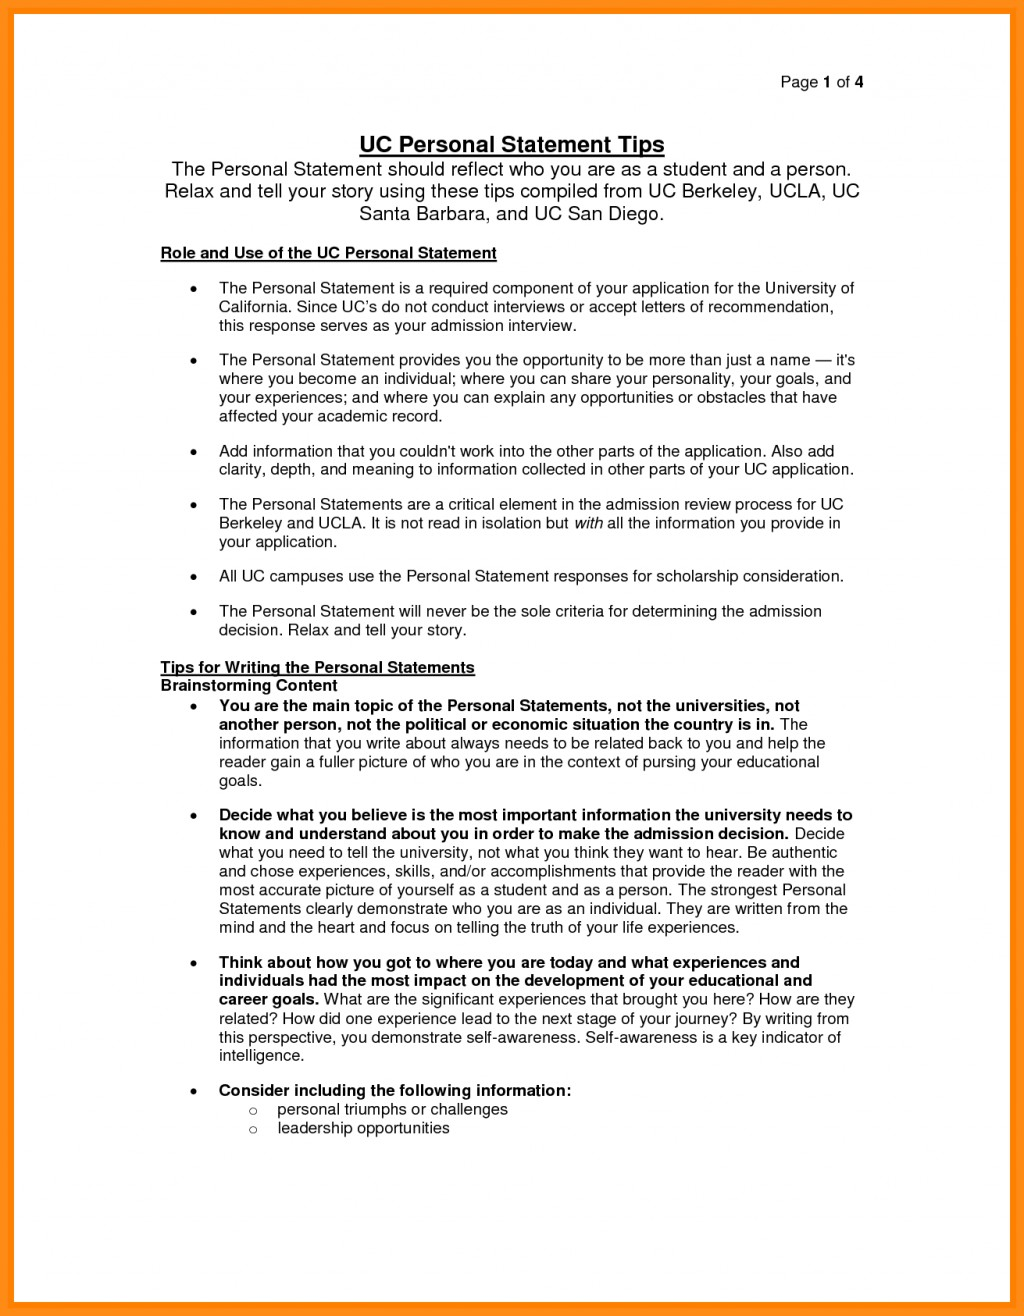 002 Uc Personal Statement Prompt Example Essay Examples Of Statements For Template Mrnpttfa Prompts Unbelievable 2018 Word Limit Irvine Transfer Large